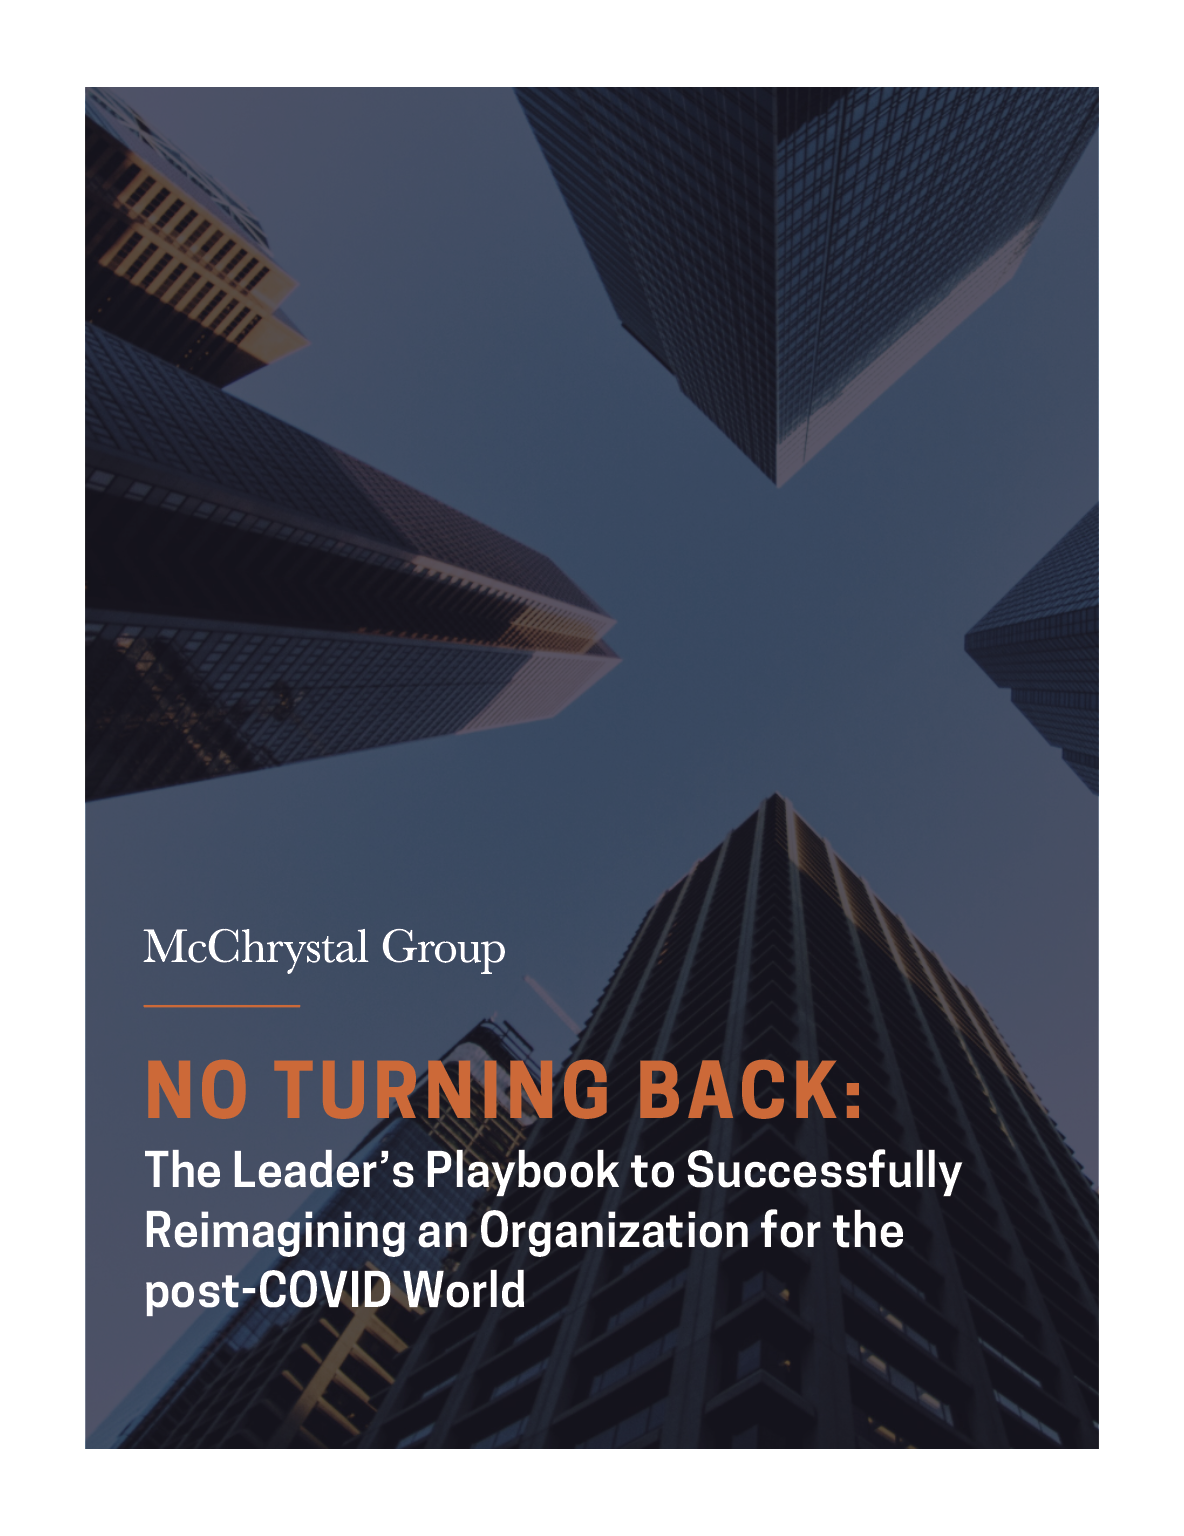 Preview of No Turning Back: The Leader's Playbook to Successfully Reimagining an Organization for the post-COVID World